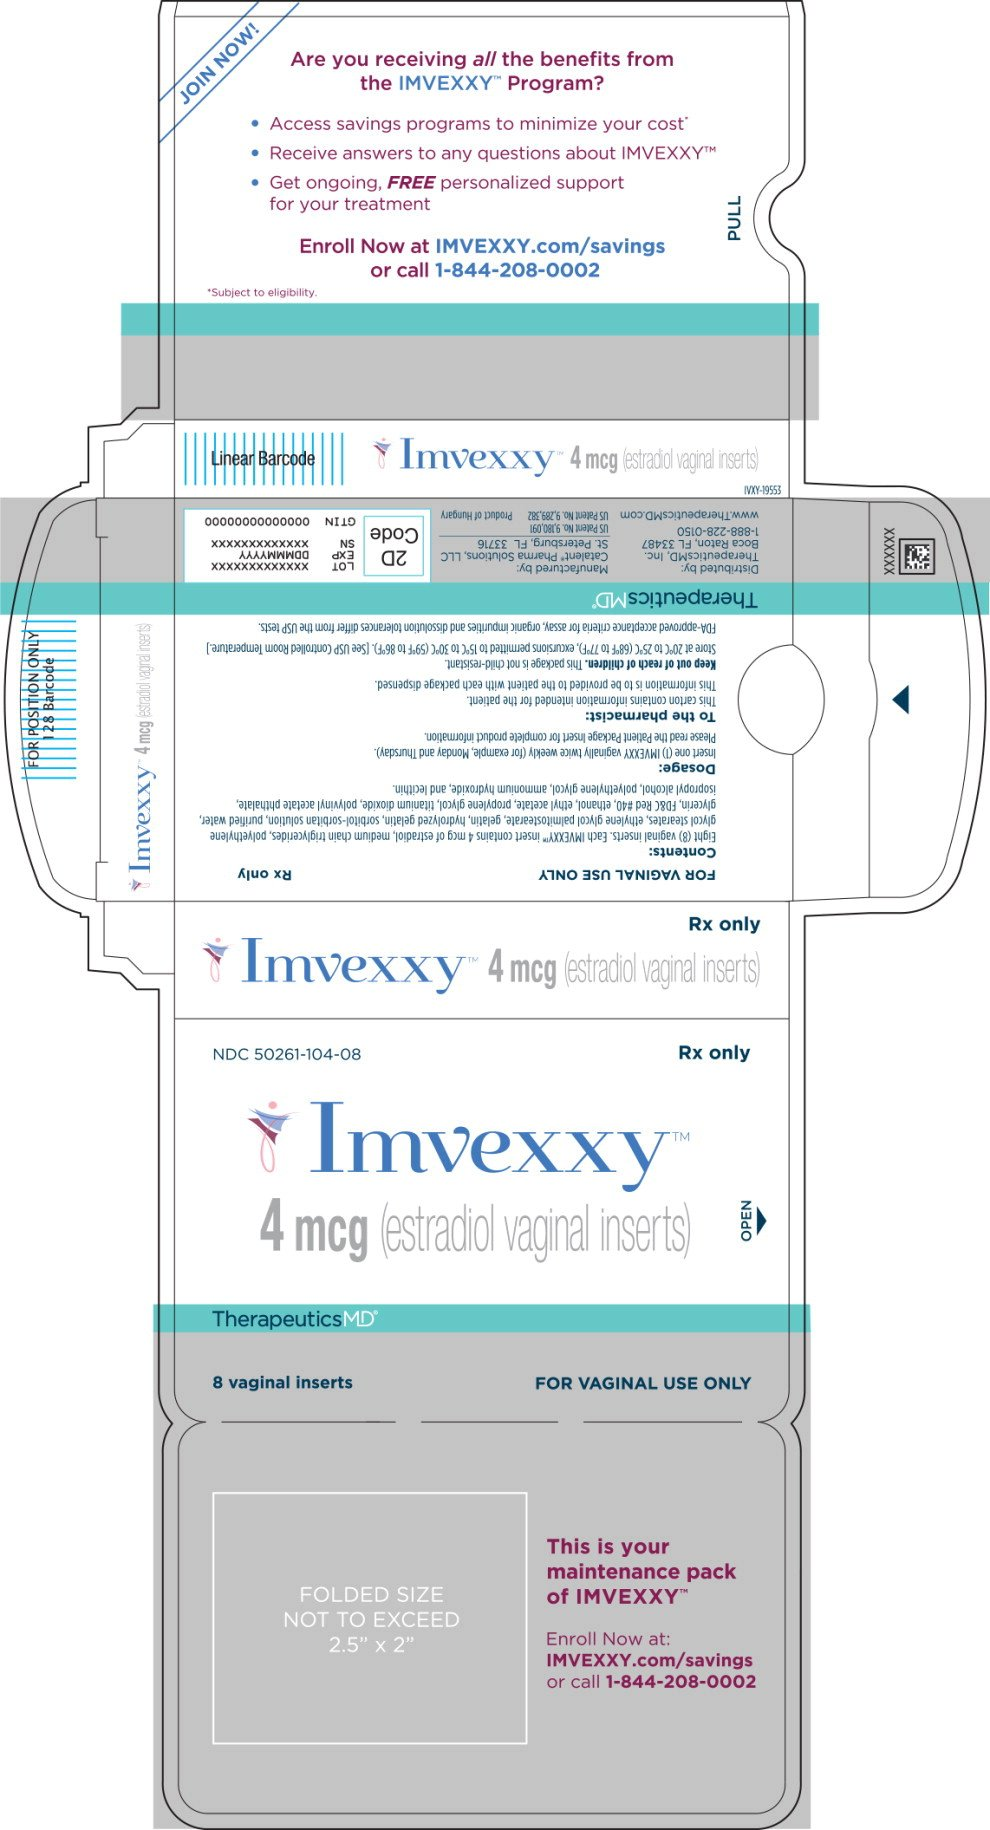 Imvexxy - FDA prescribing information side effects and uses